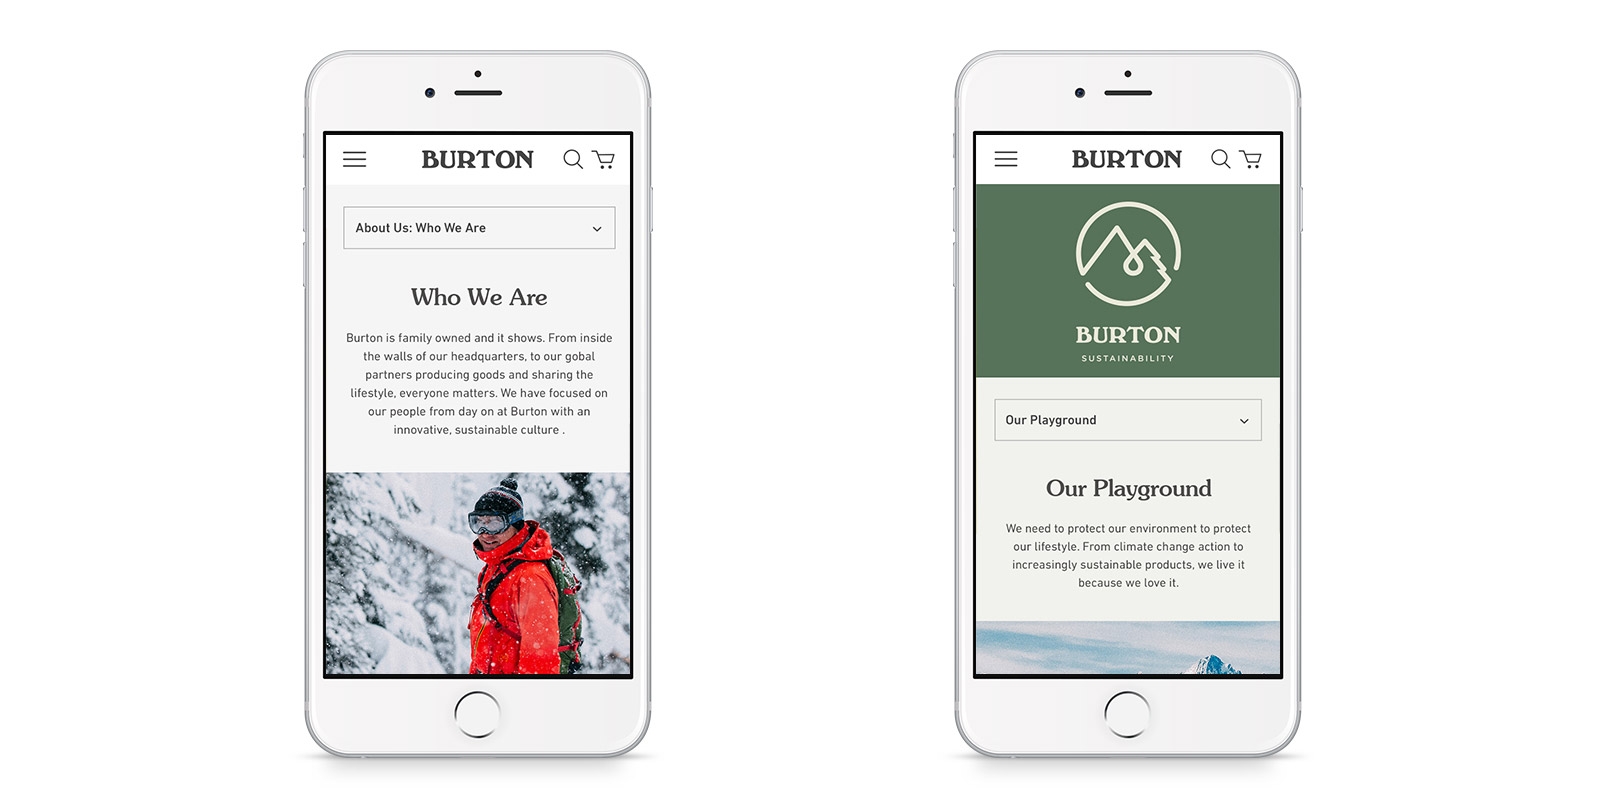 Burton-2017-AboutUs-Sus-Mobile.jpg